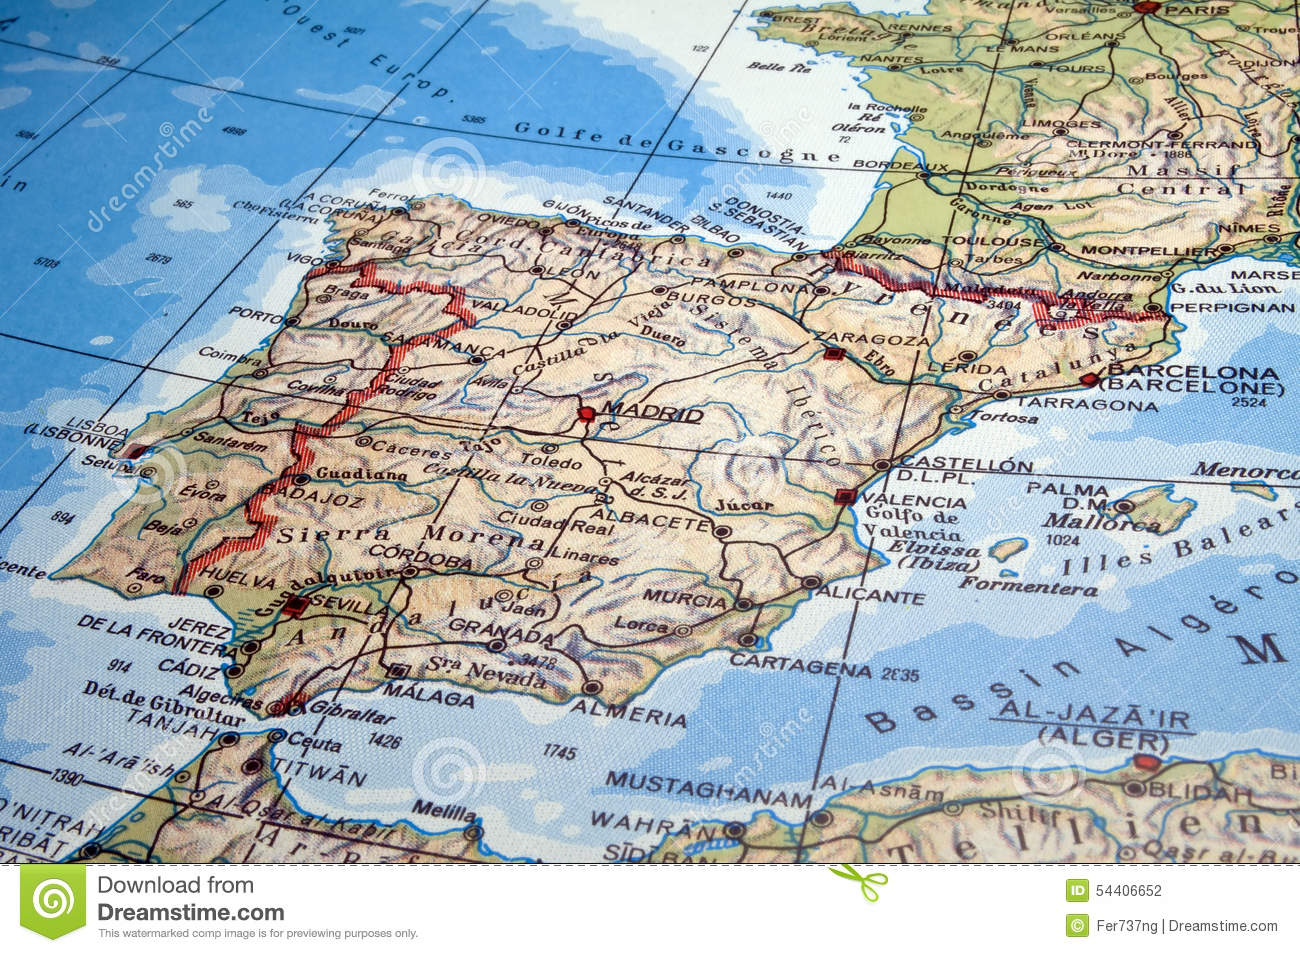 Map Of Spain Portugal And France.Spain And Portugal Map Stock Photo Image Of Mediterranean 54406652